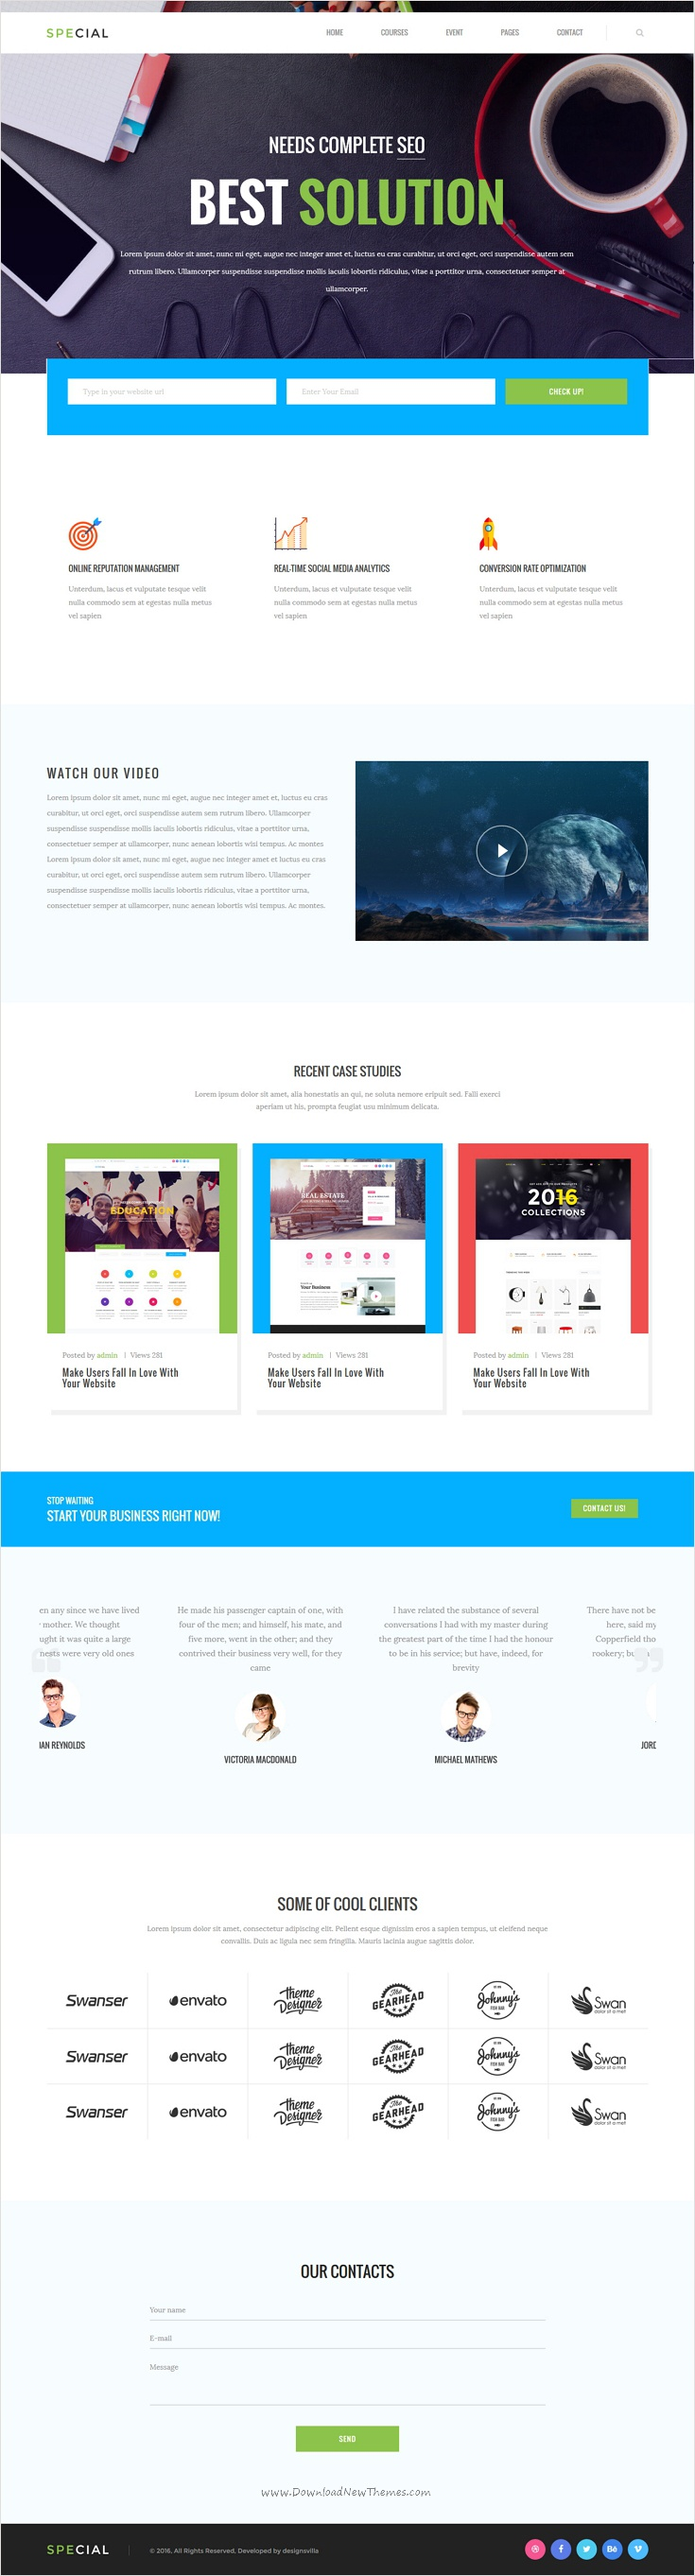 Pin By Web Design Inspiration On Free Bootstrap Themes Collection - Seo landing page template